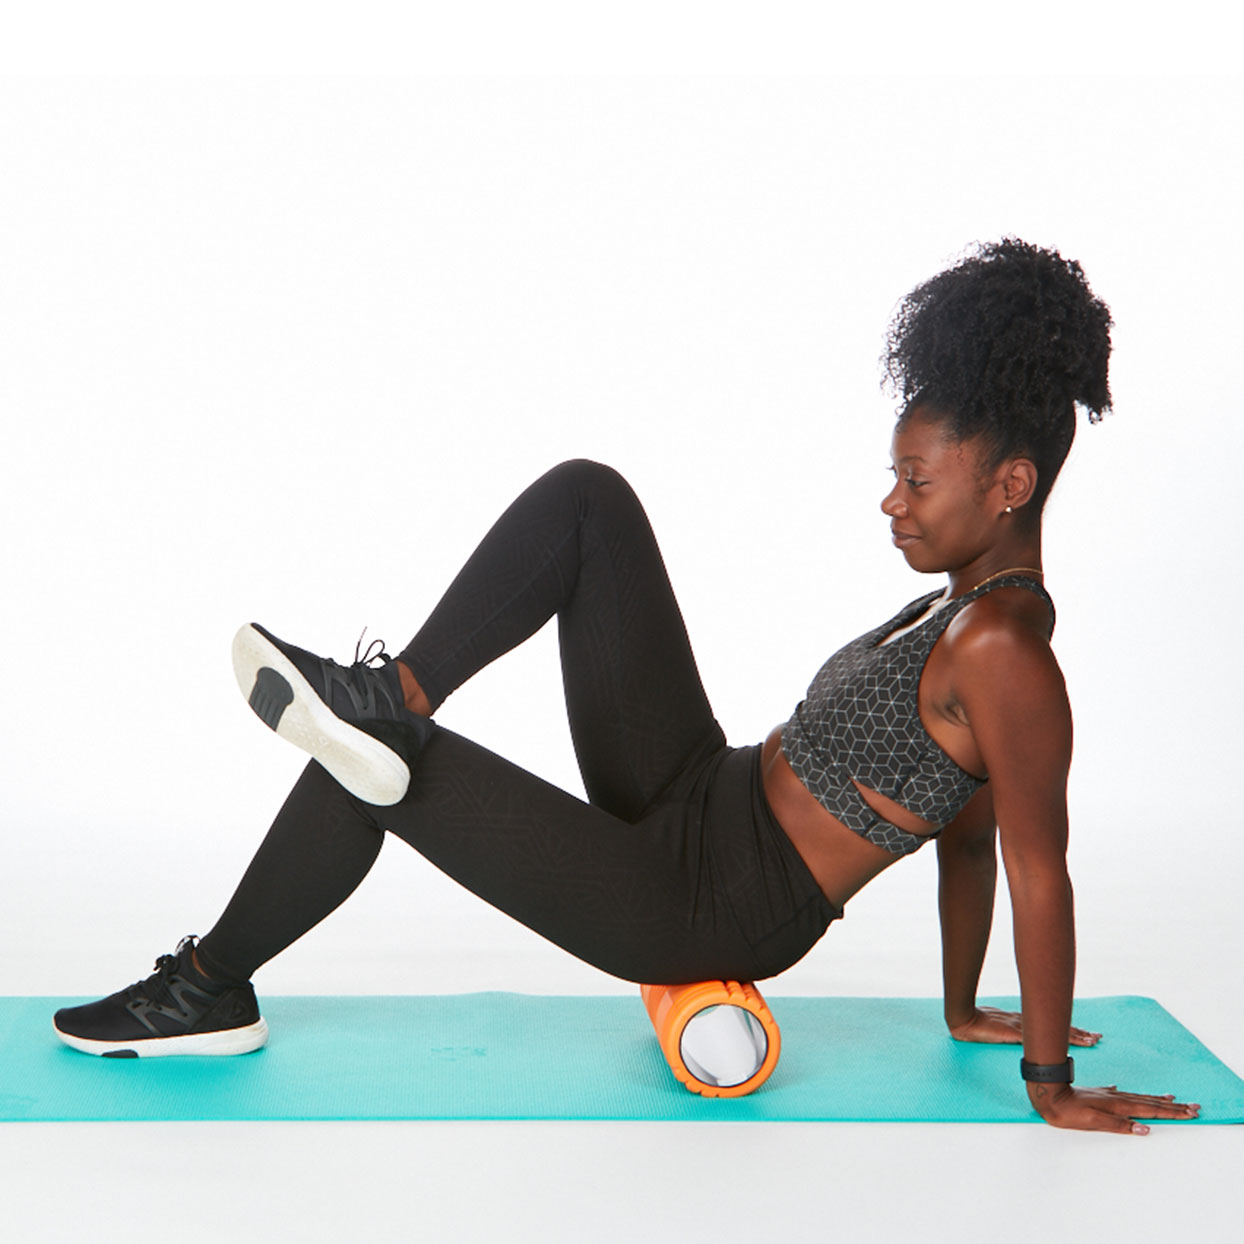 IT band stretches foam roller